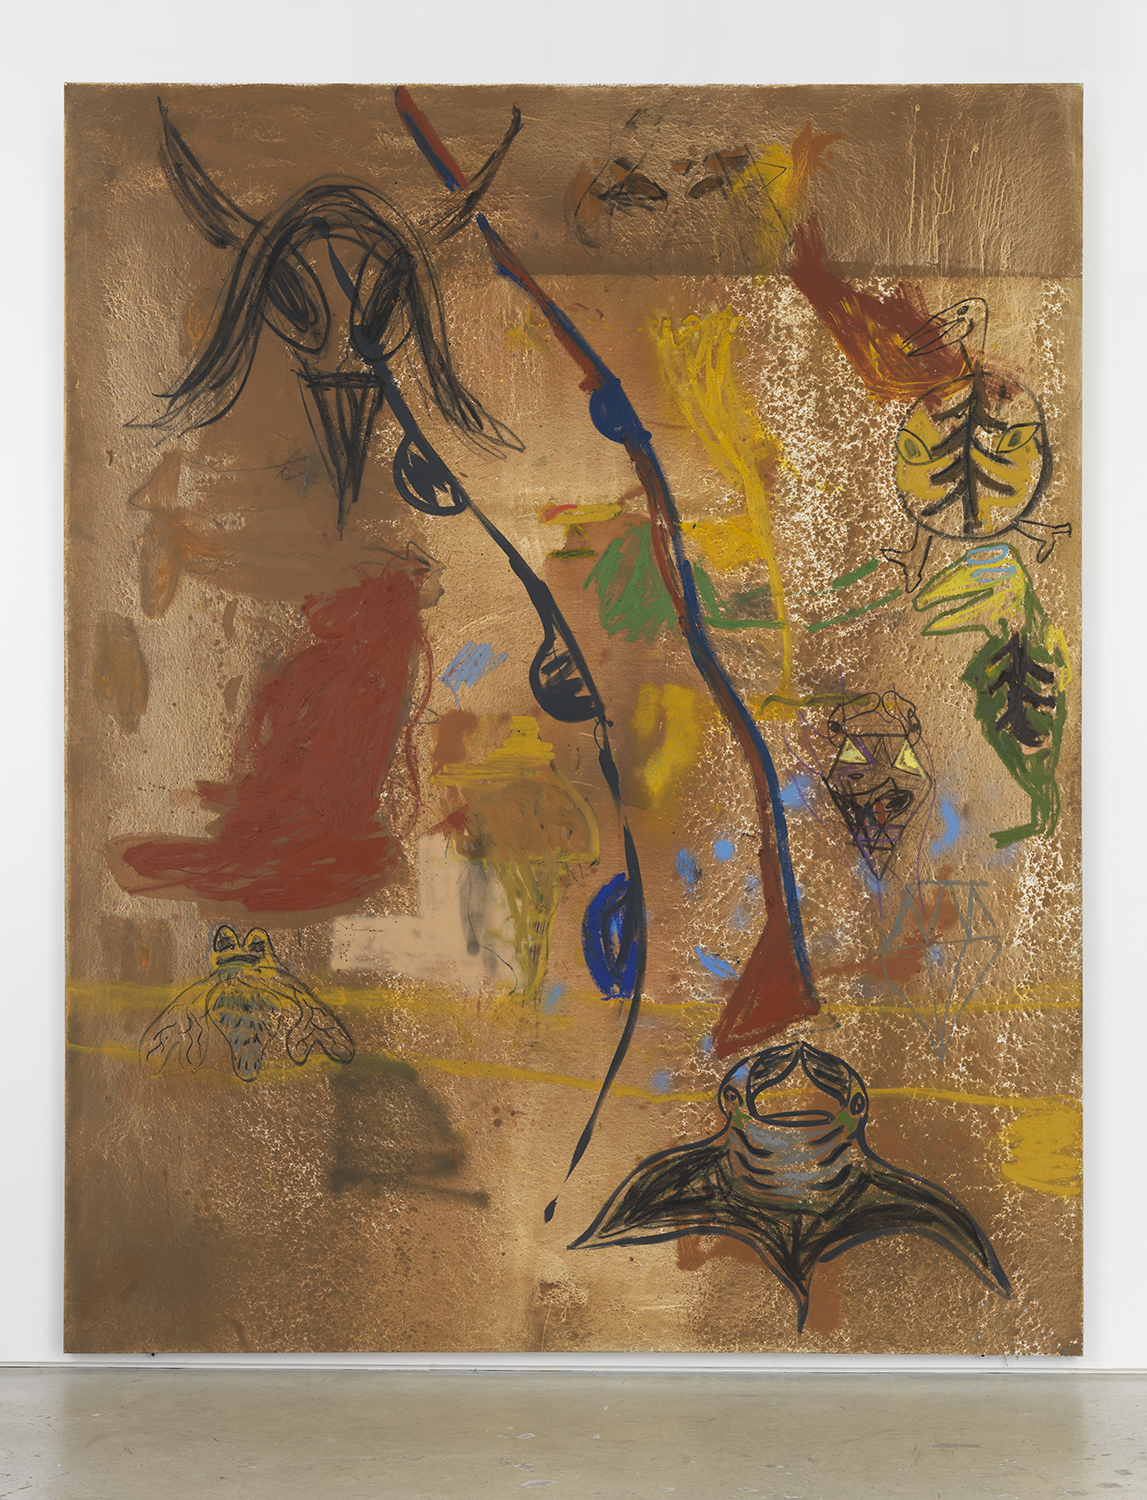 Bill Saylor, Holon, 2017, oil, flashe, spray paint, oil stick, graphite and charcoal on canvas, 120h x 96w x 1.13d in.